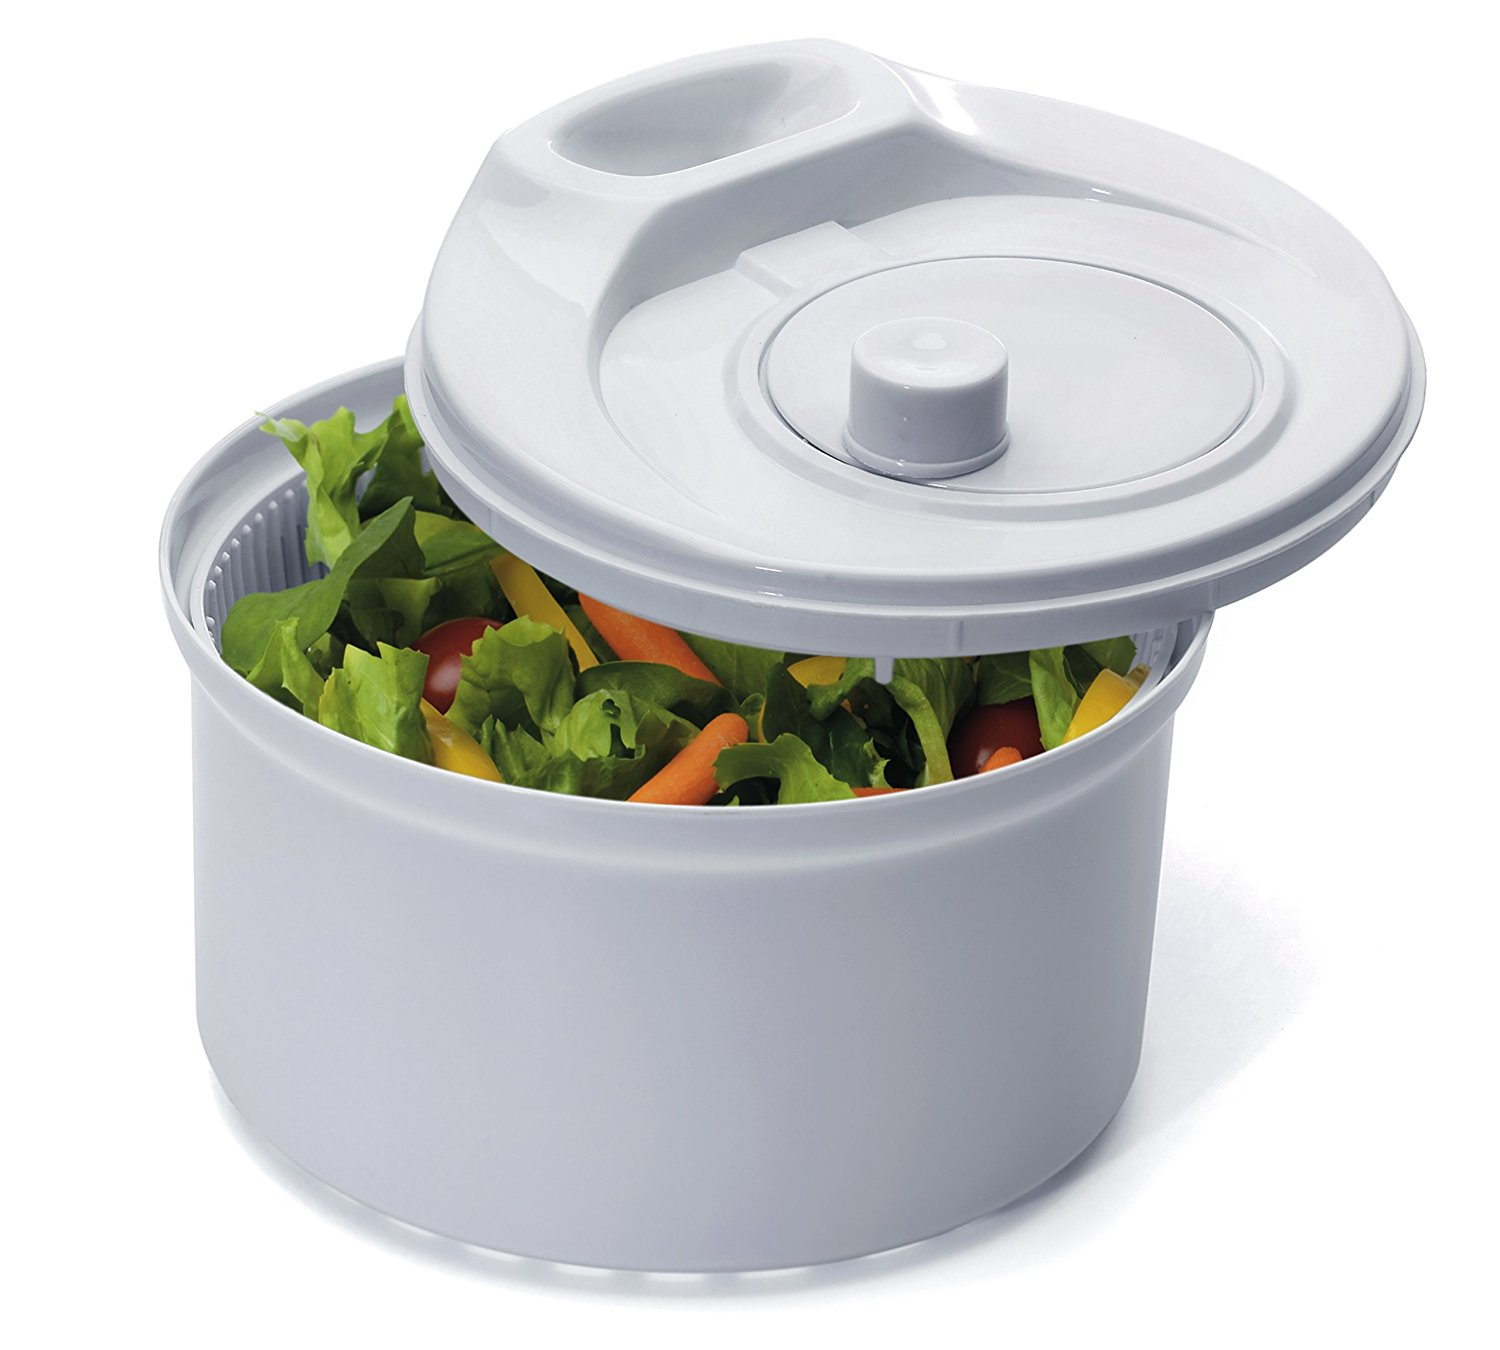 Progressive Prepworks Flow Through Salad Spinner